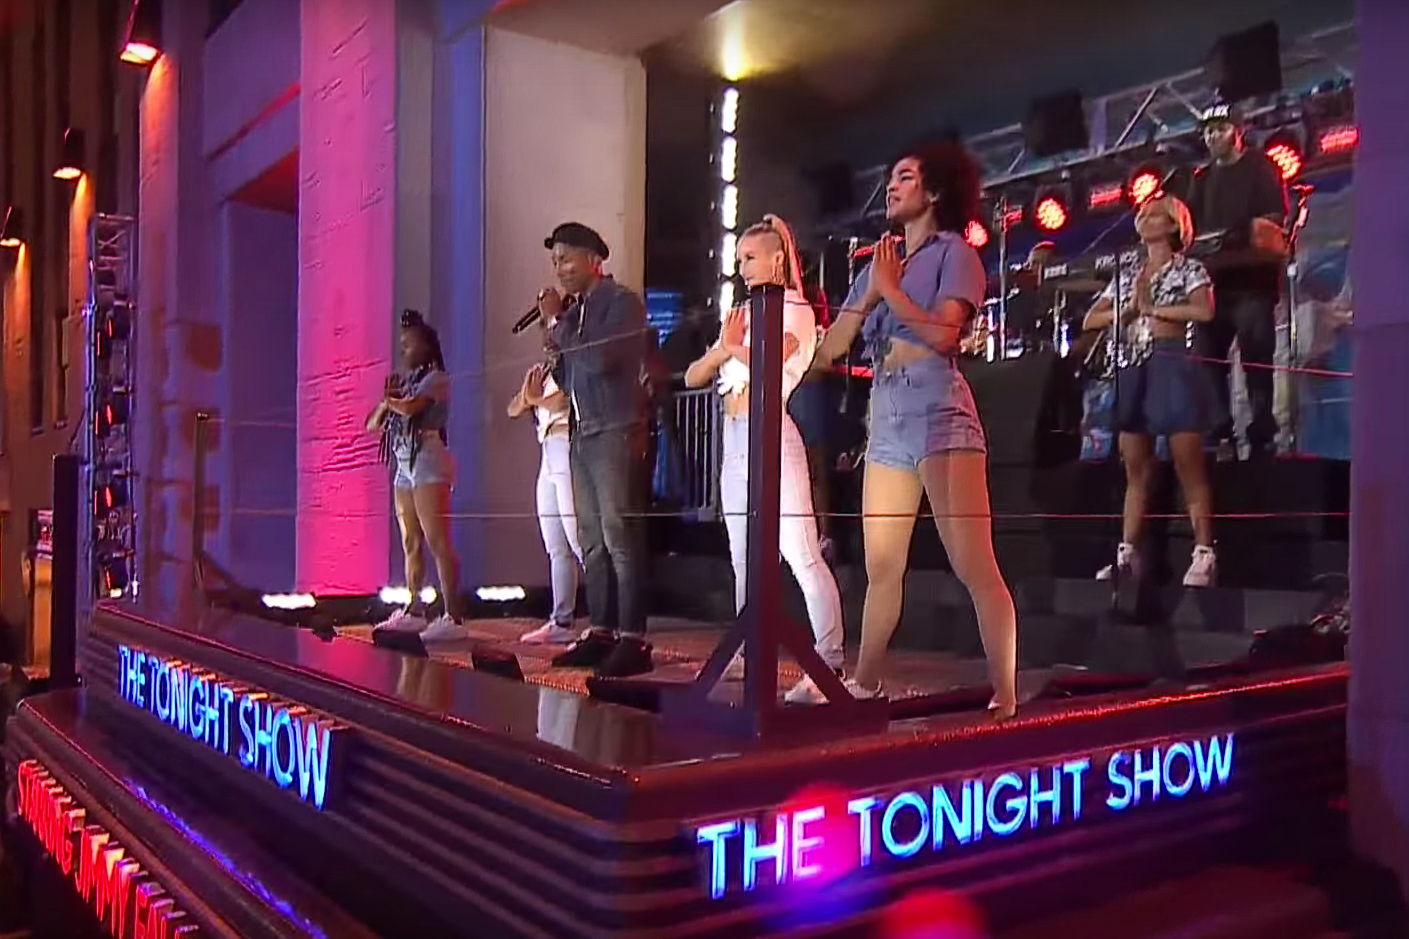 """Watch Pharrell Williams Perform """"Freedom"""" on Top of The Tonight Show Marquee in NYC"""